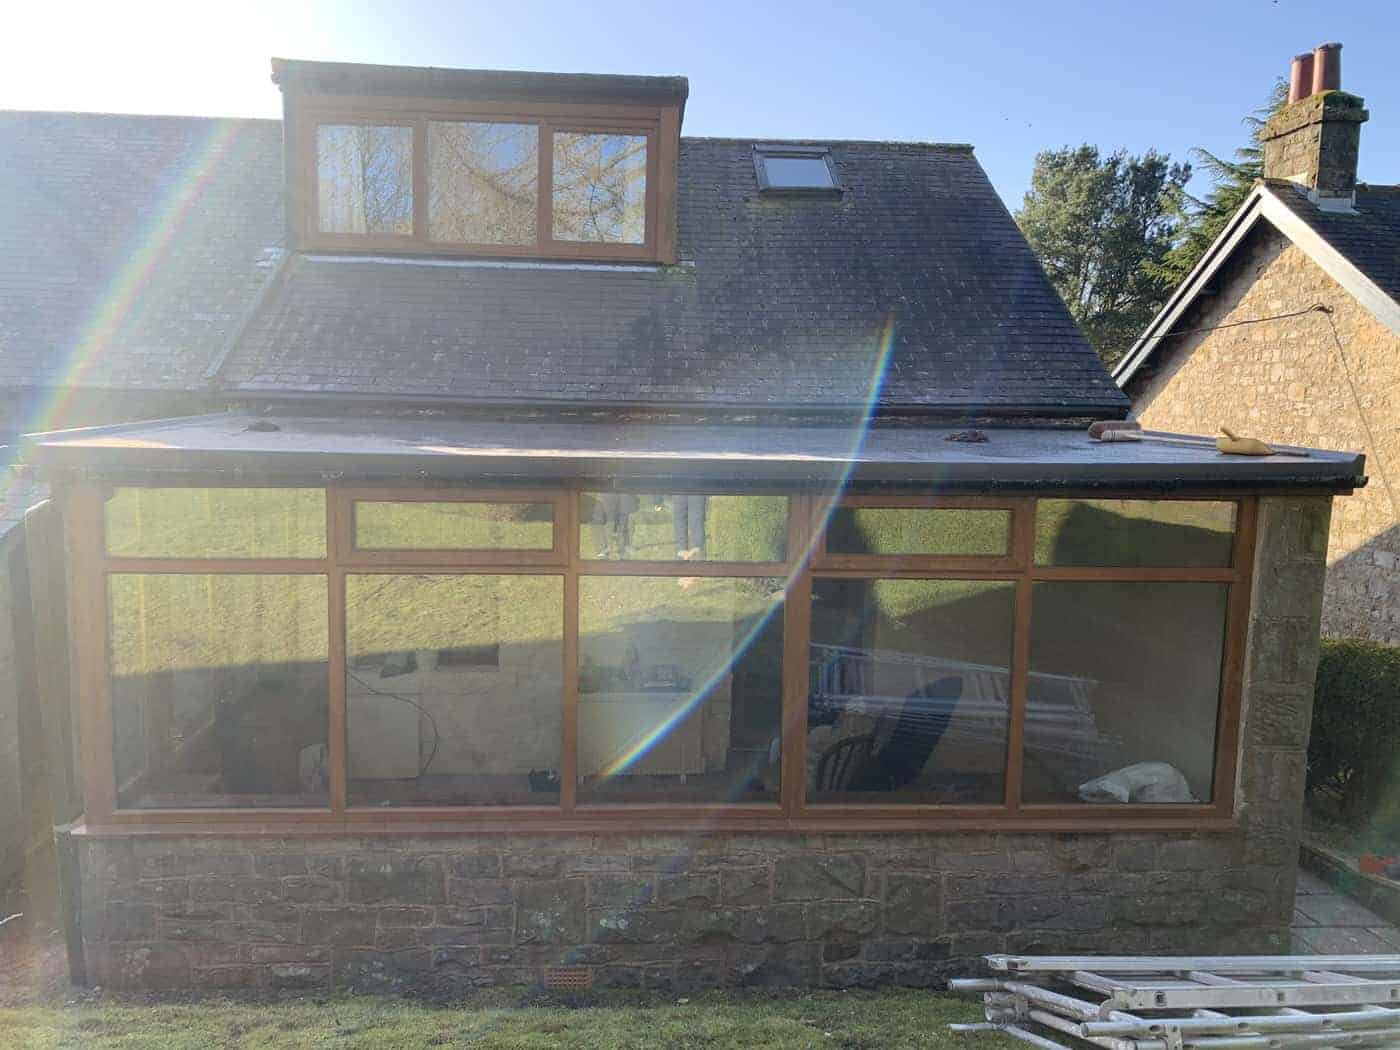 Bates-Grp-Roof-H-and-M-Construction-Middeton-in-Teesdale-0004